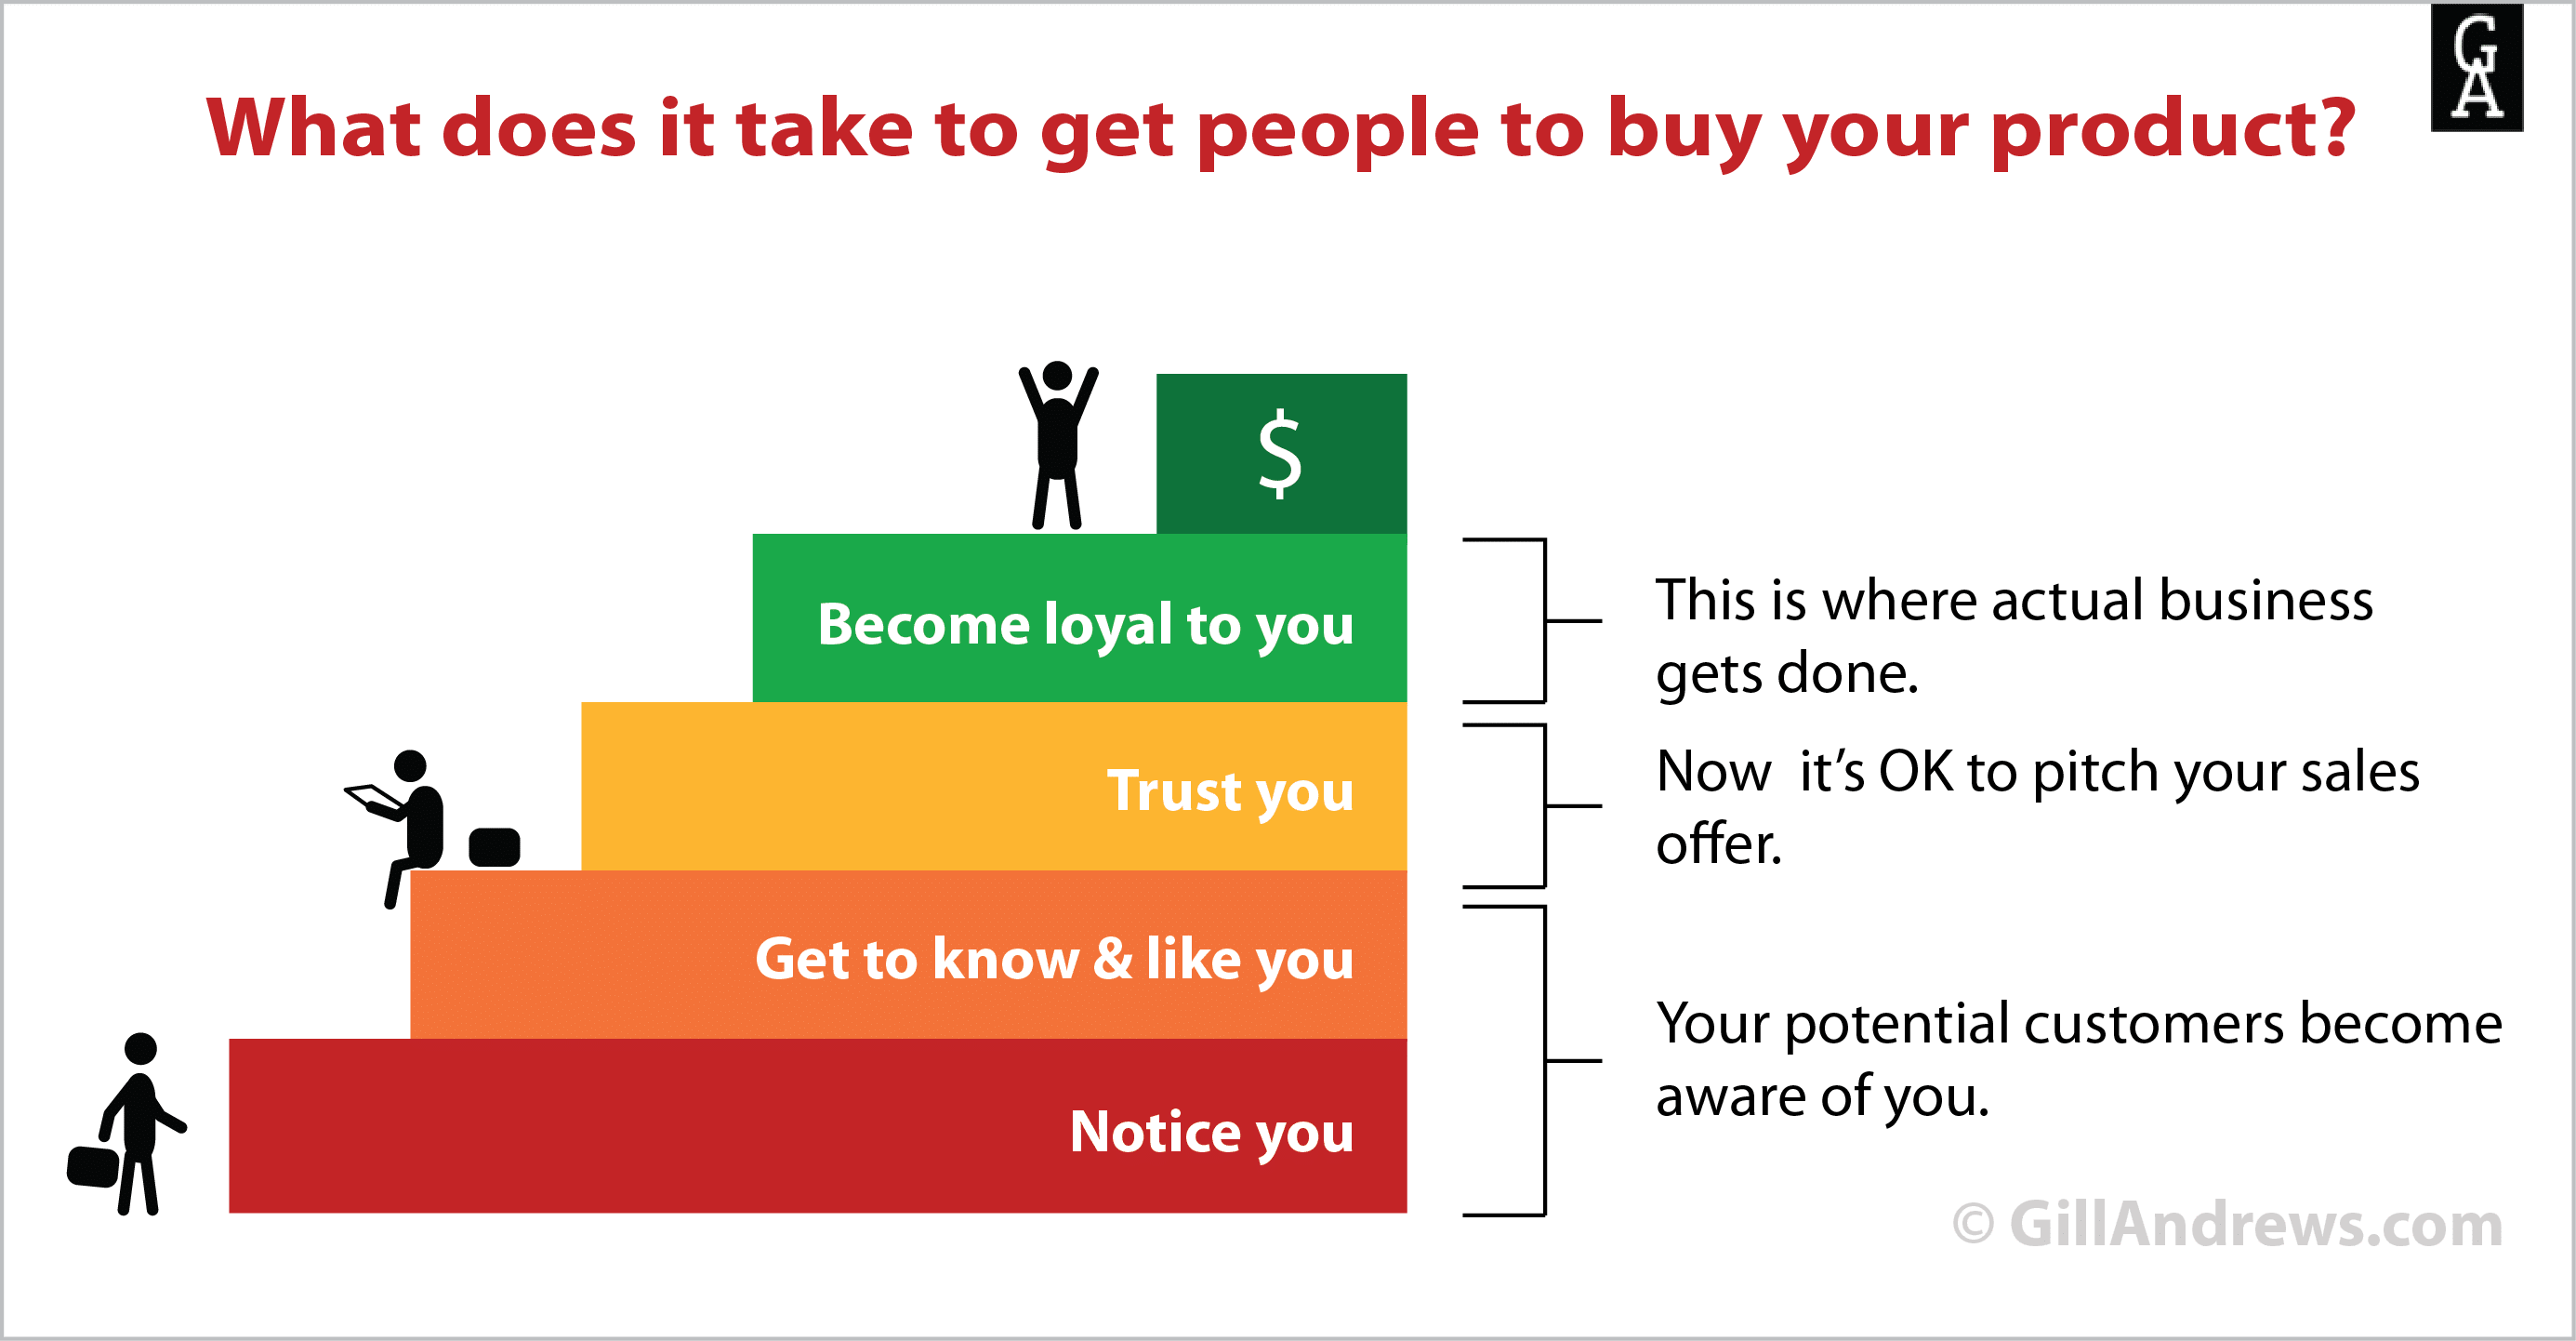 What does it take to get people to buy your product?